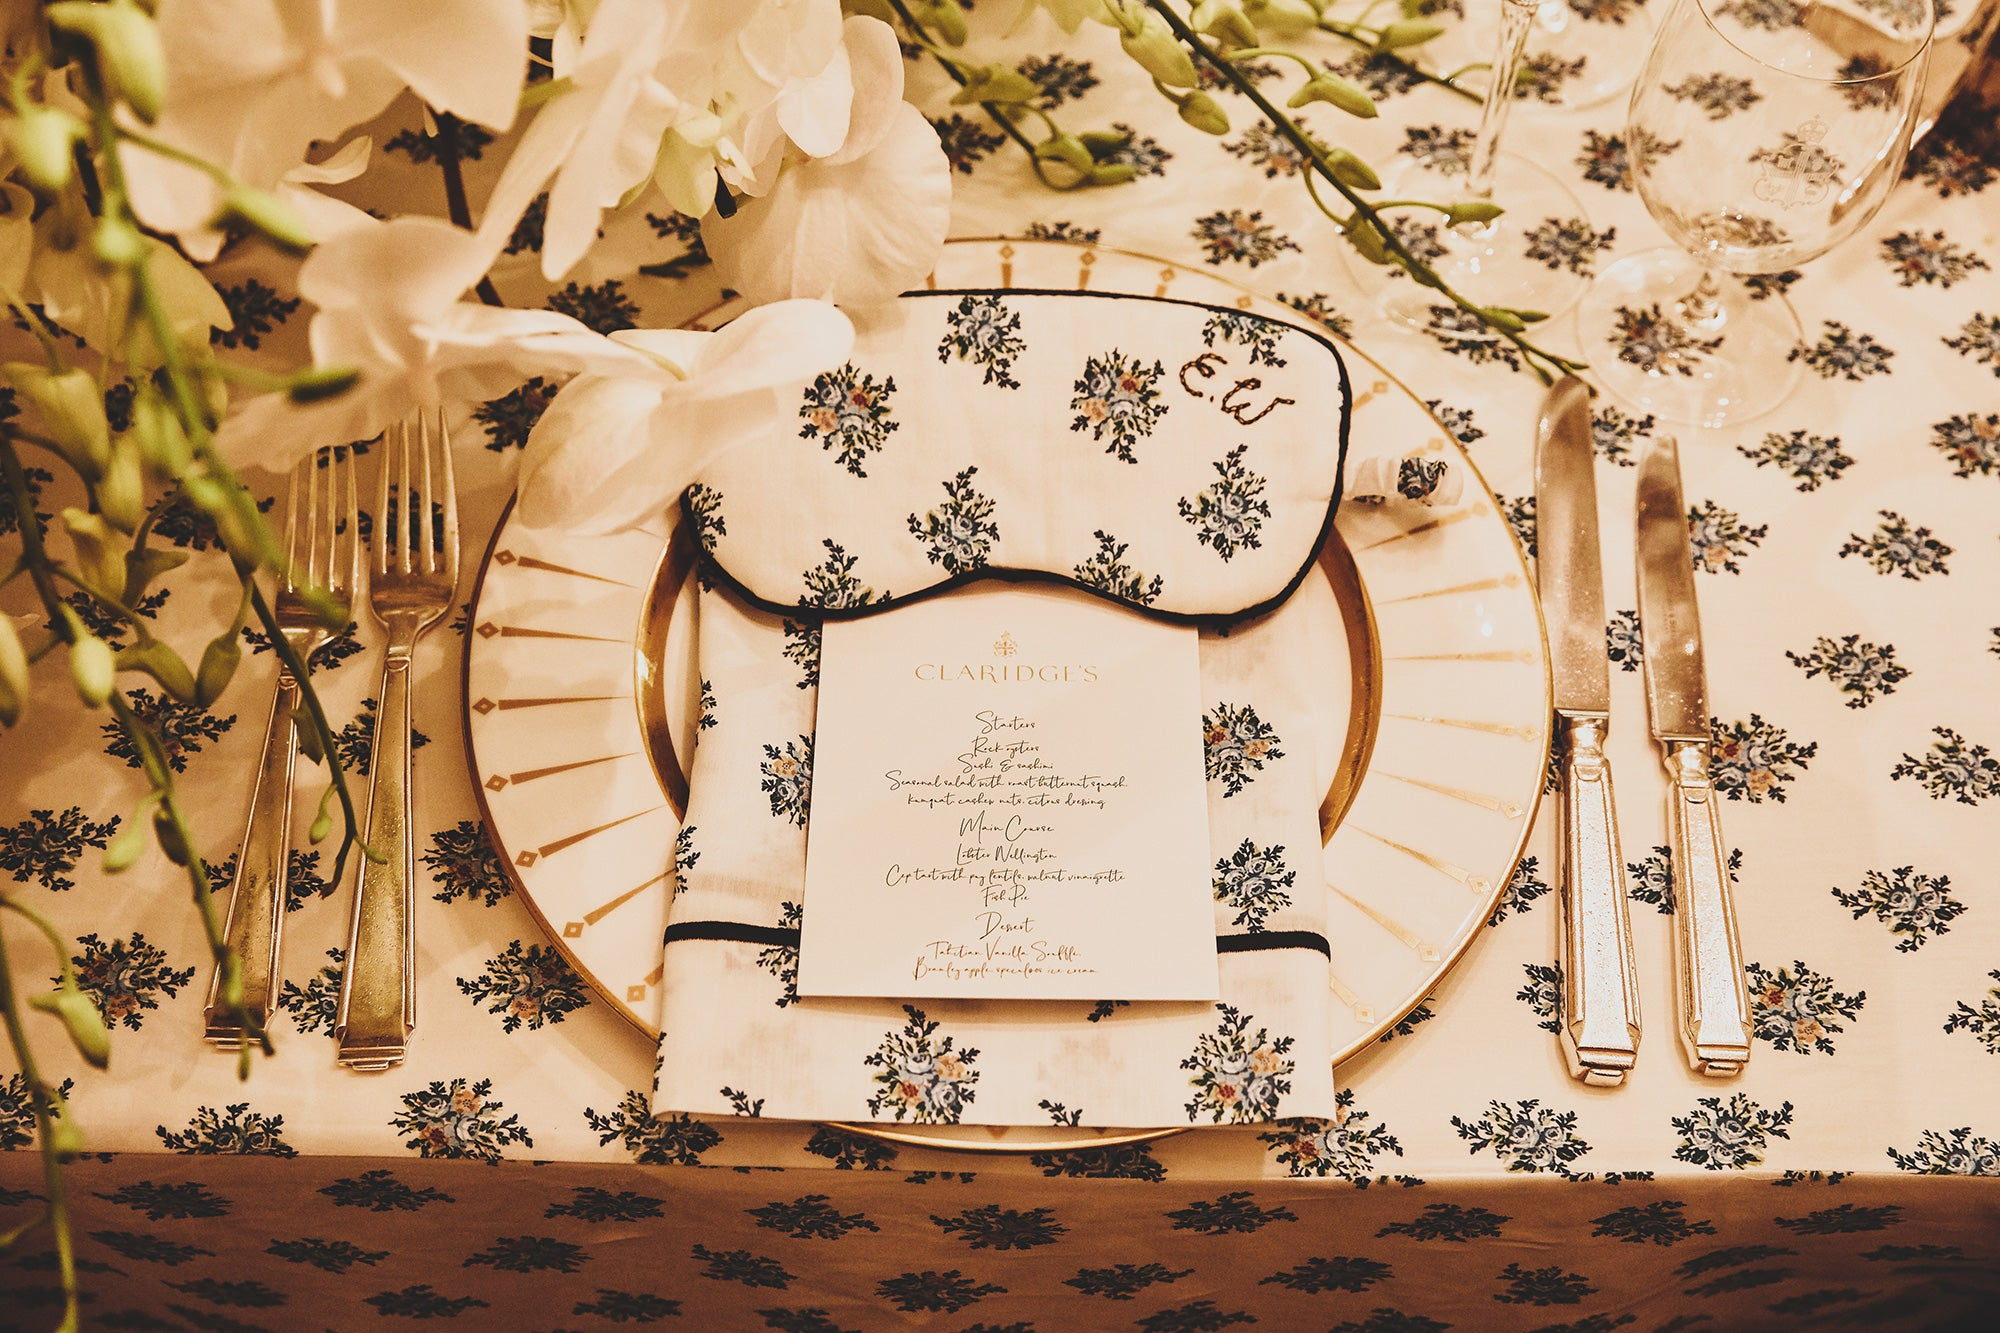 The Menu -  An Evening at Claridges with Emilia Wickstead